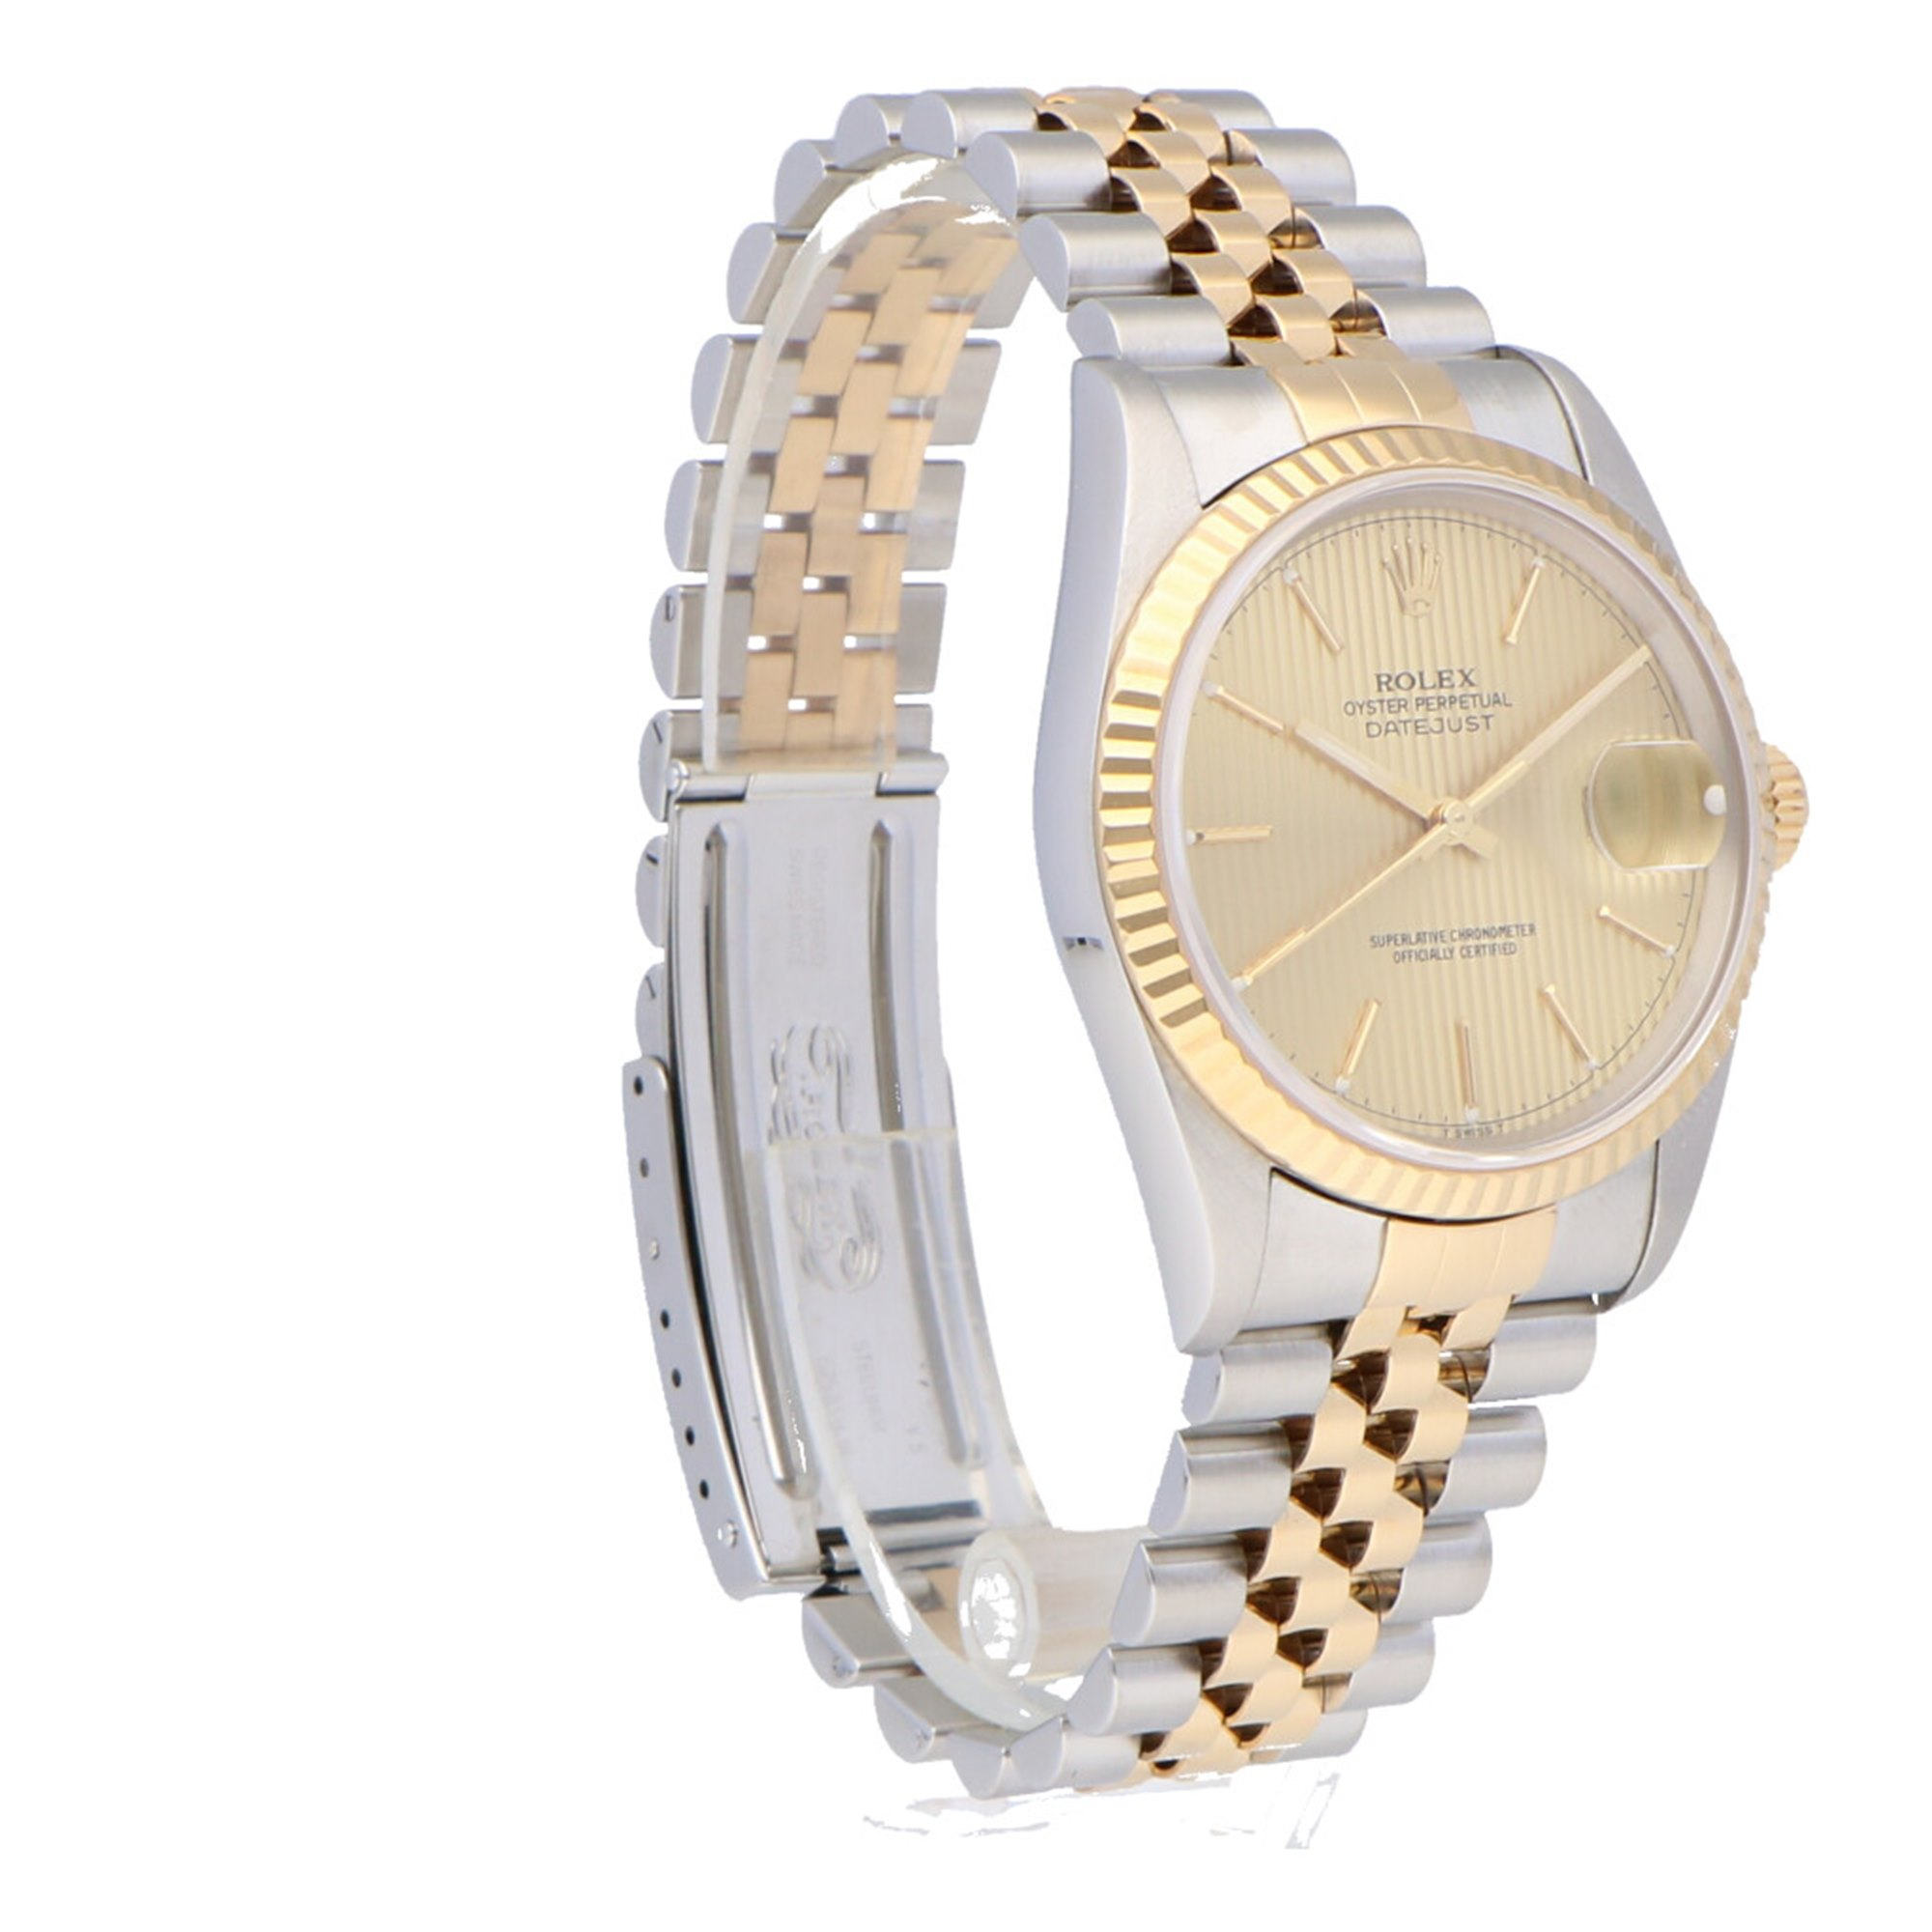 Rolex Datejust Stainless Steel & Yellow Gold 16233OCC